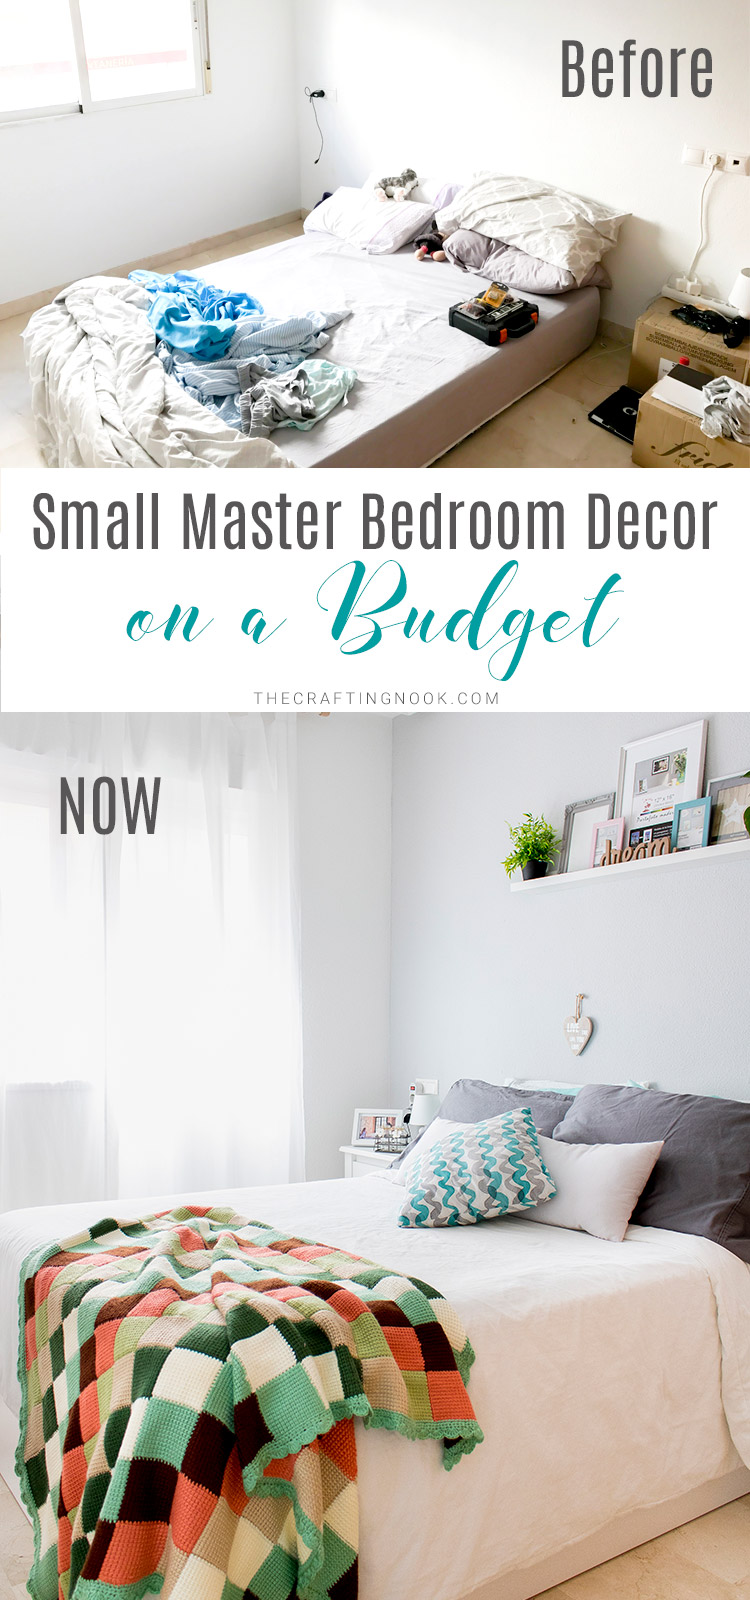 Small Master Bedroom Decor on a Budget (The Before and NOW)